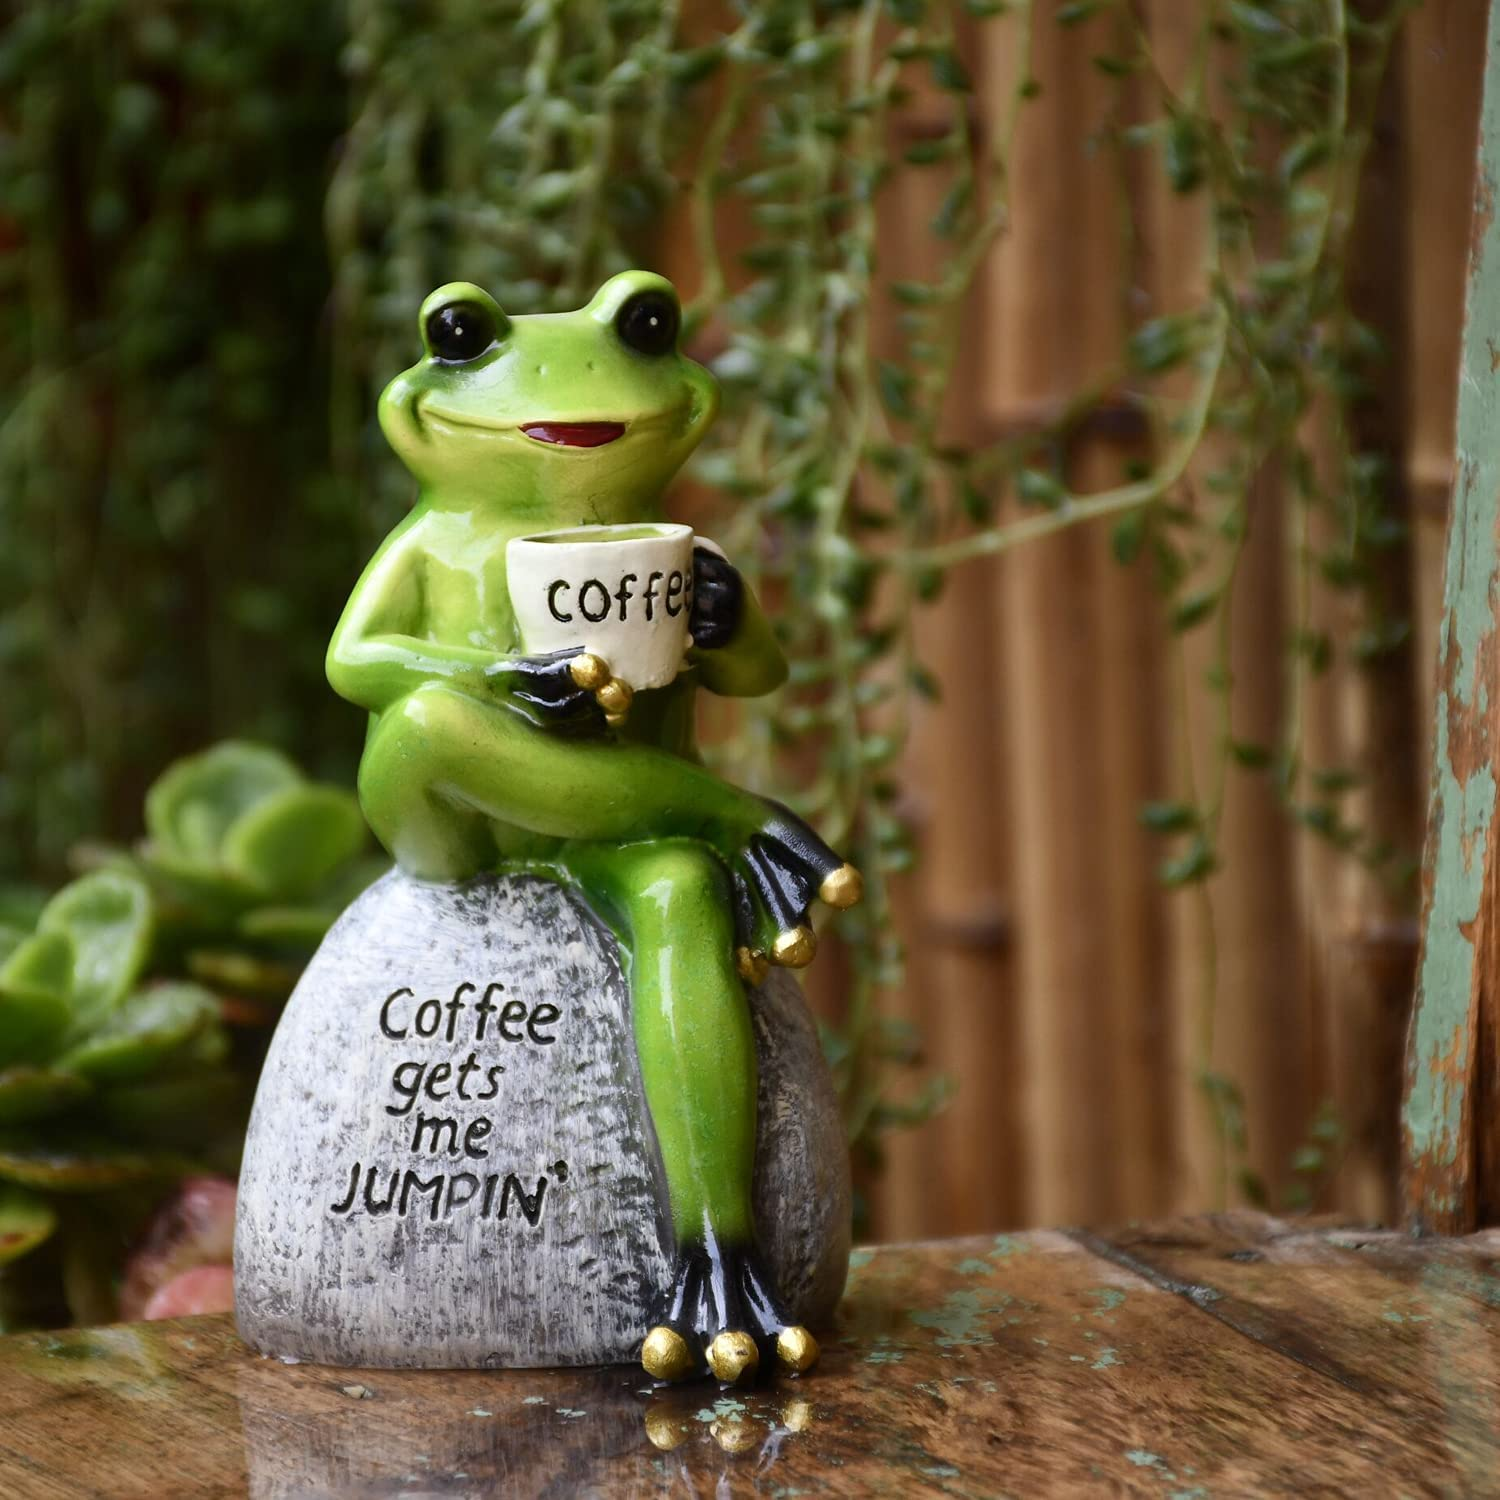 OwMell Green Frog Statue Sitting on Stone Drinking Coffee Pose Figurine Garden Patio Indoor Outdoor Decoration Model Sculpture Small Size 4 Inch